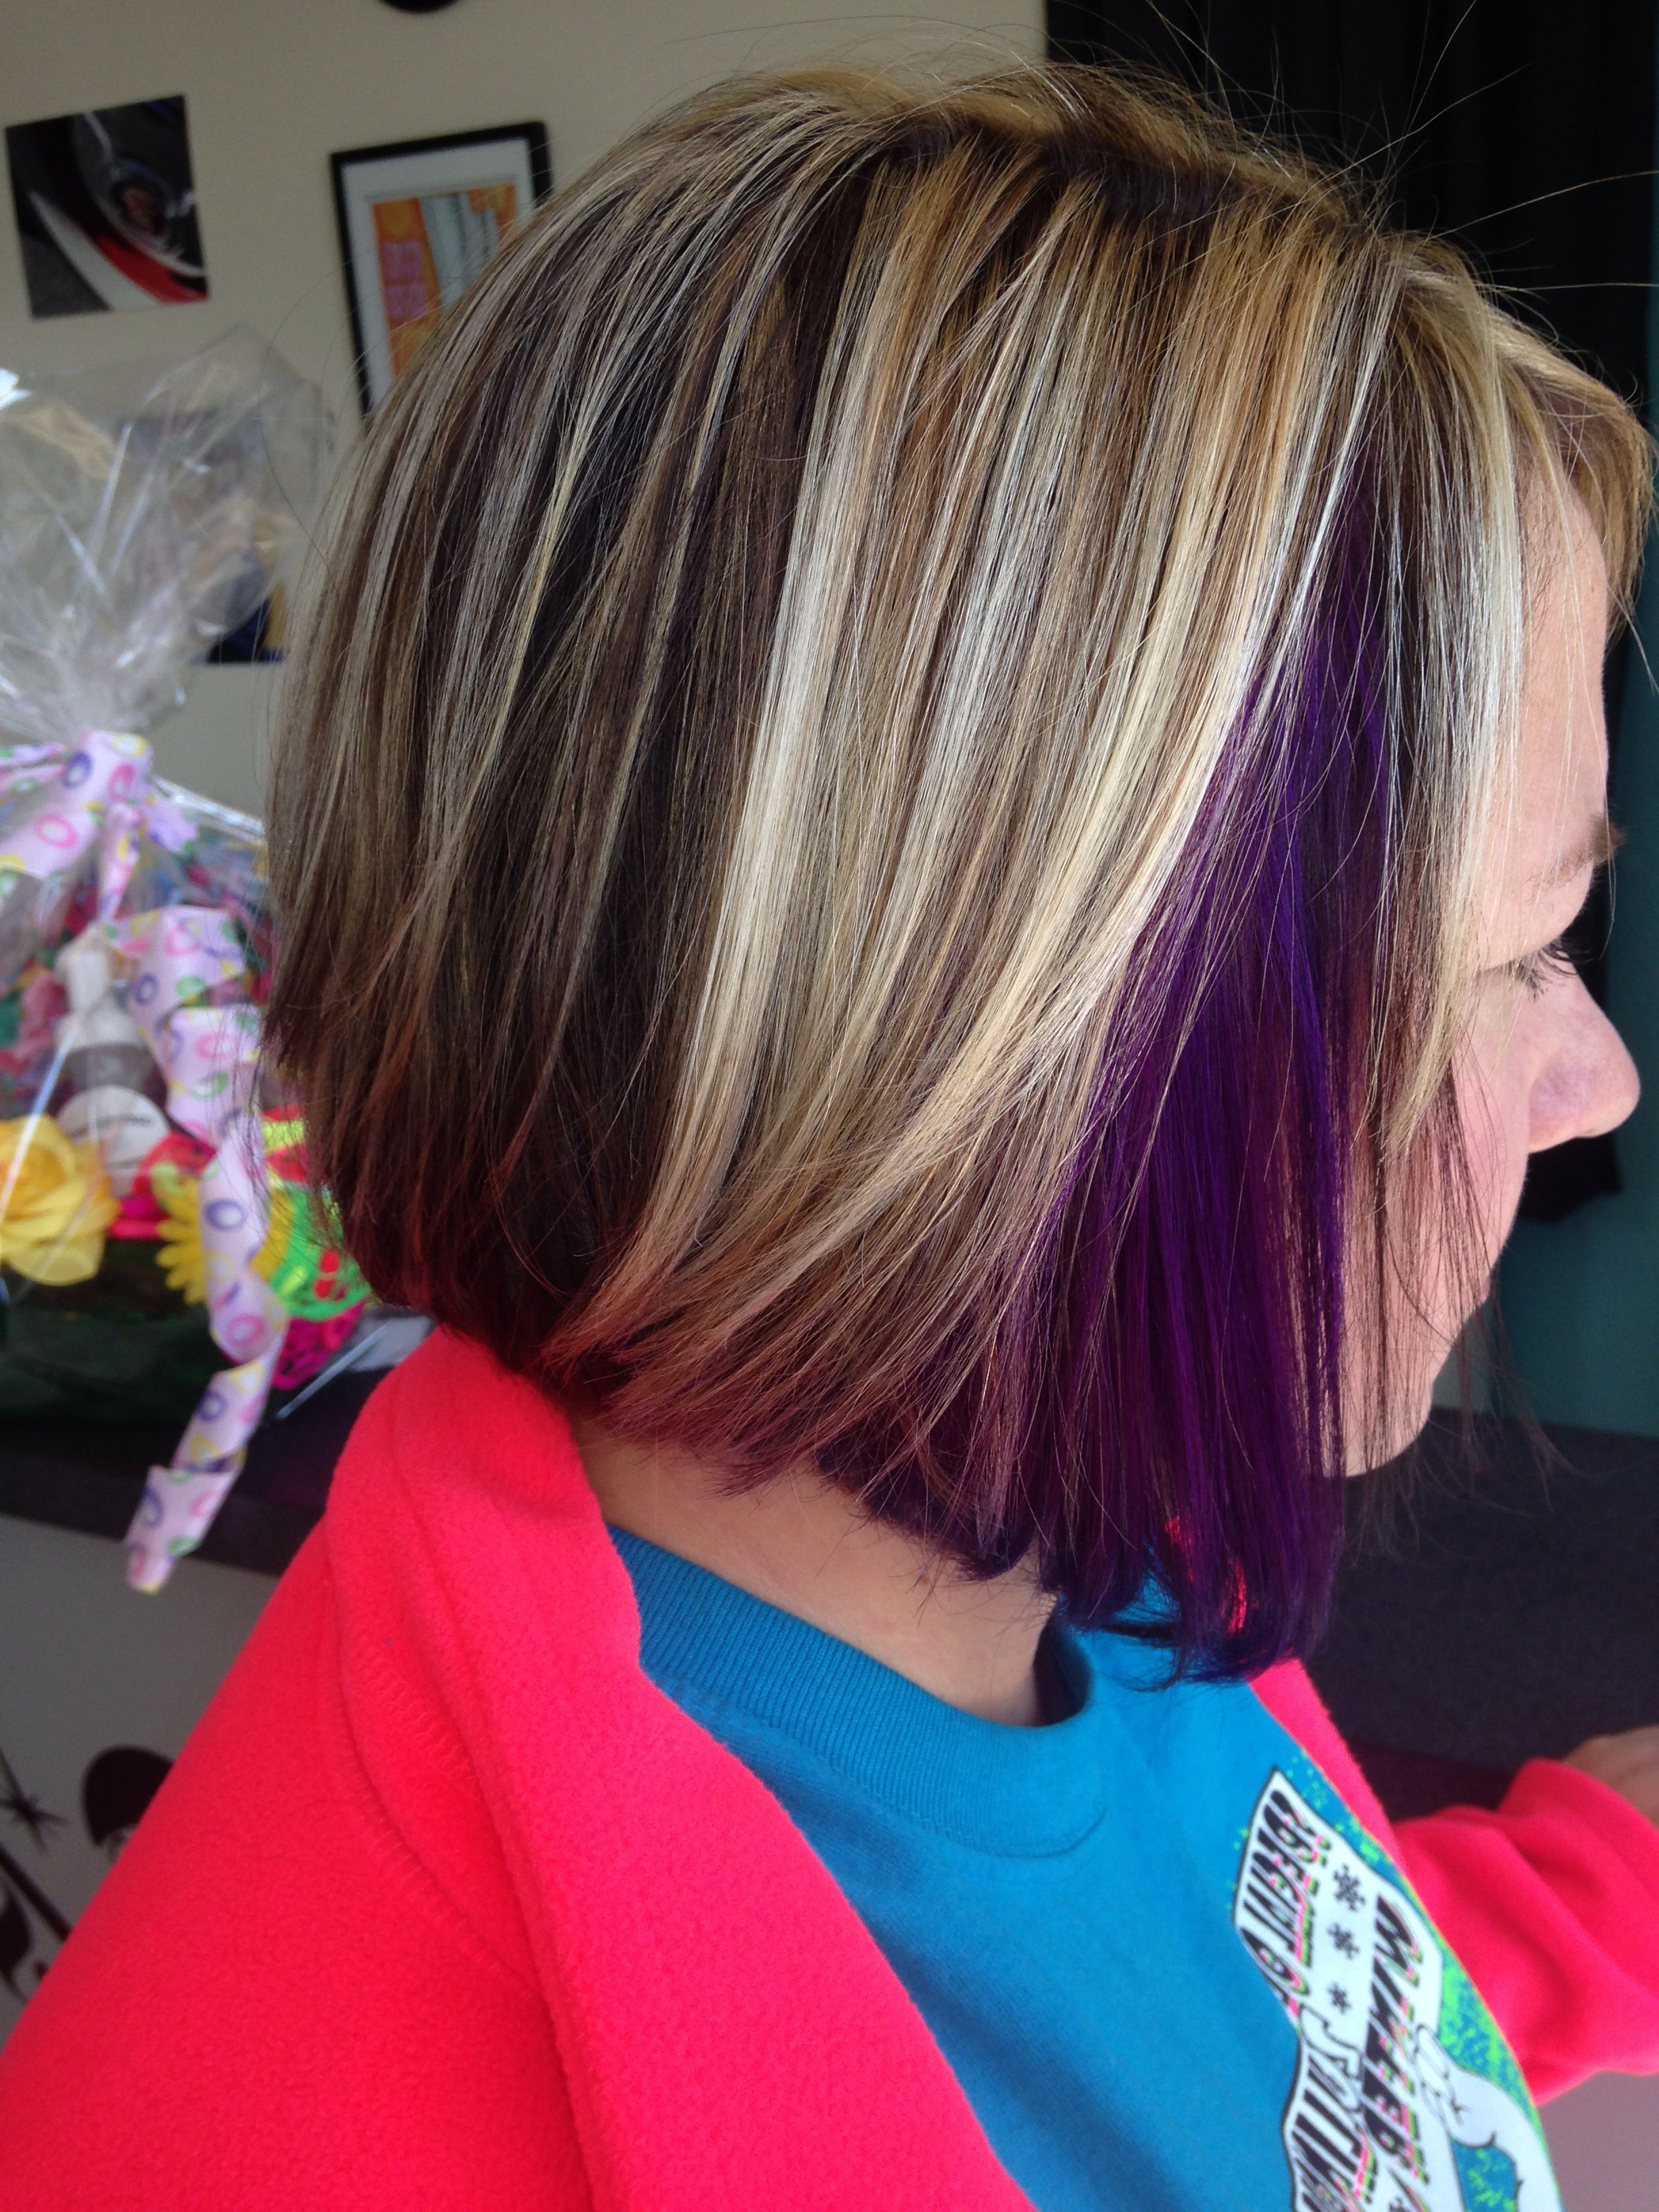 Just A Pop Of Purple! Peek A Boo Purple With Blonde Highlights Pertaining To Extreme Angled Bob Haircuts With Pink Peek A Boos (View 19 of 20)